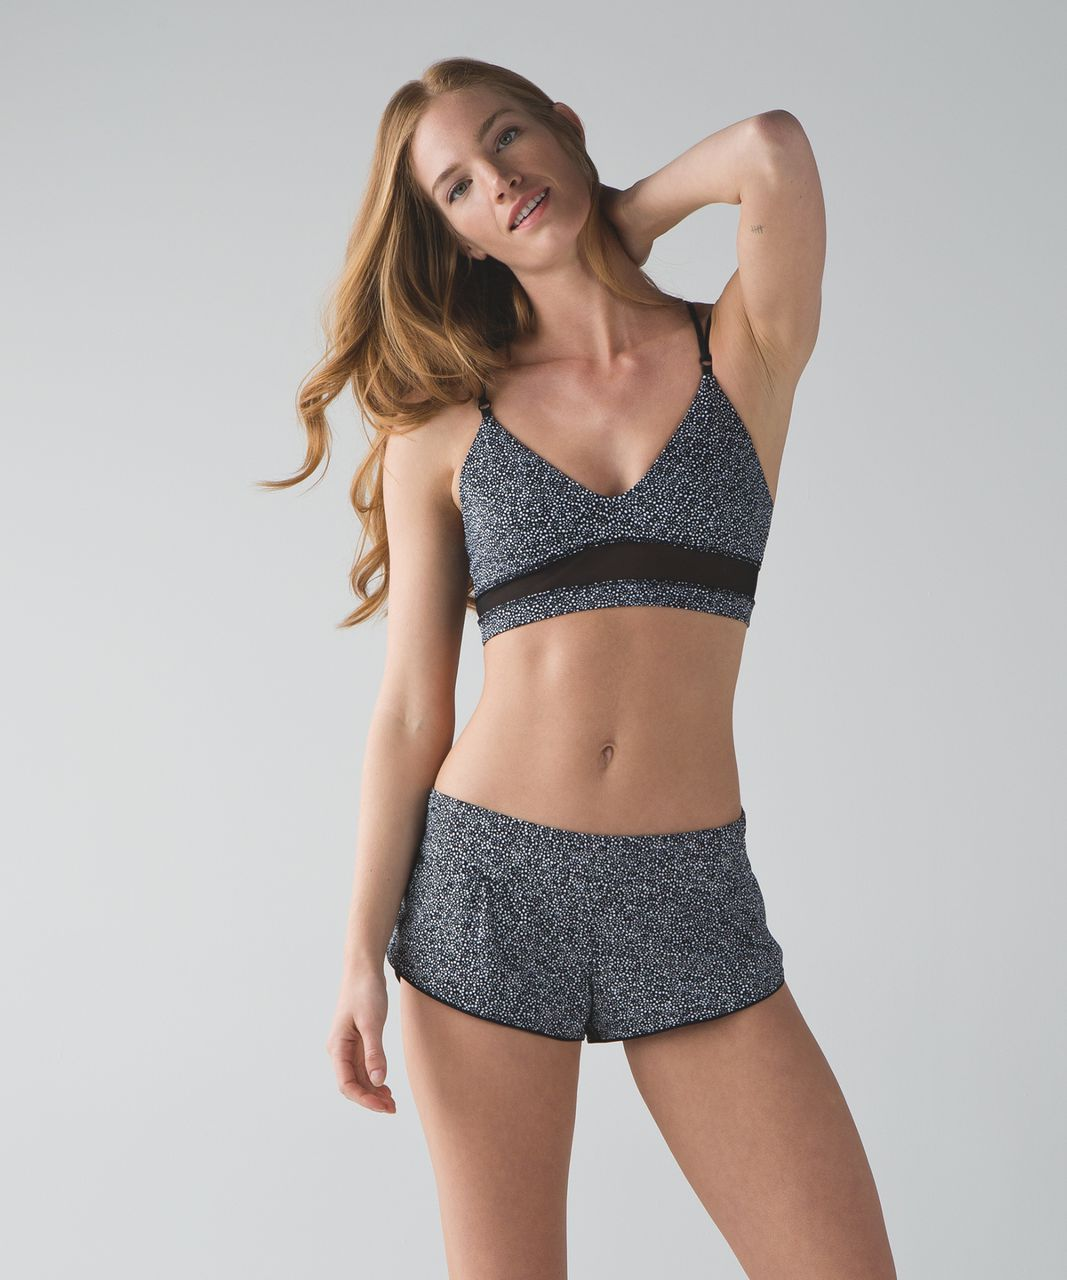 Lululemon Go With The Flow Top - Freckle Flower Black White / Black